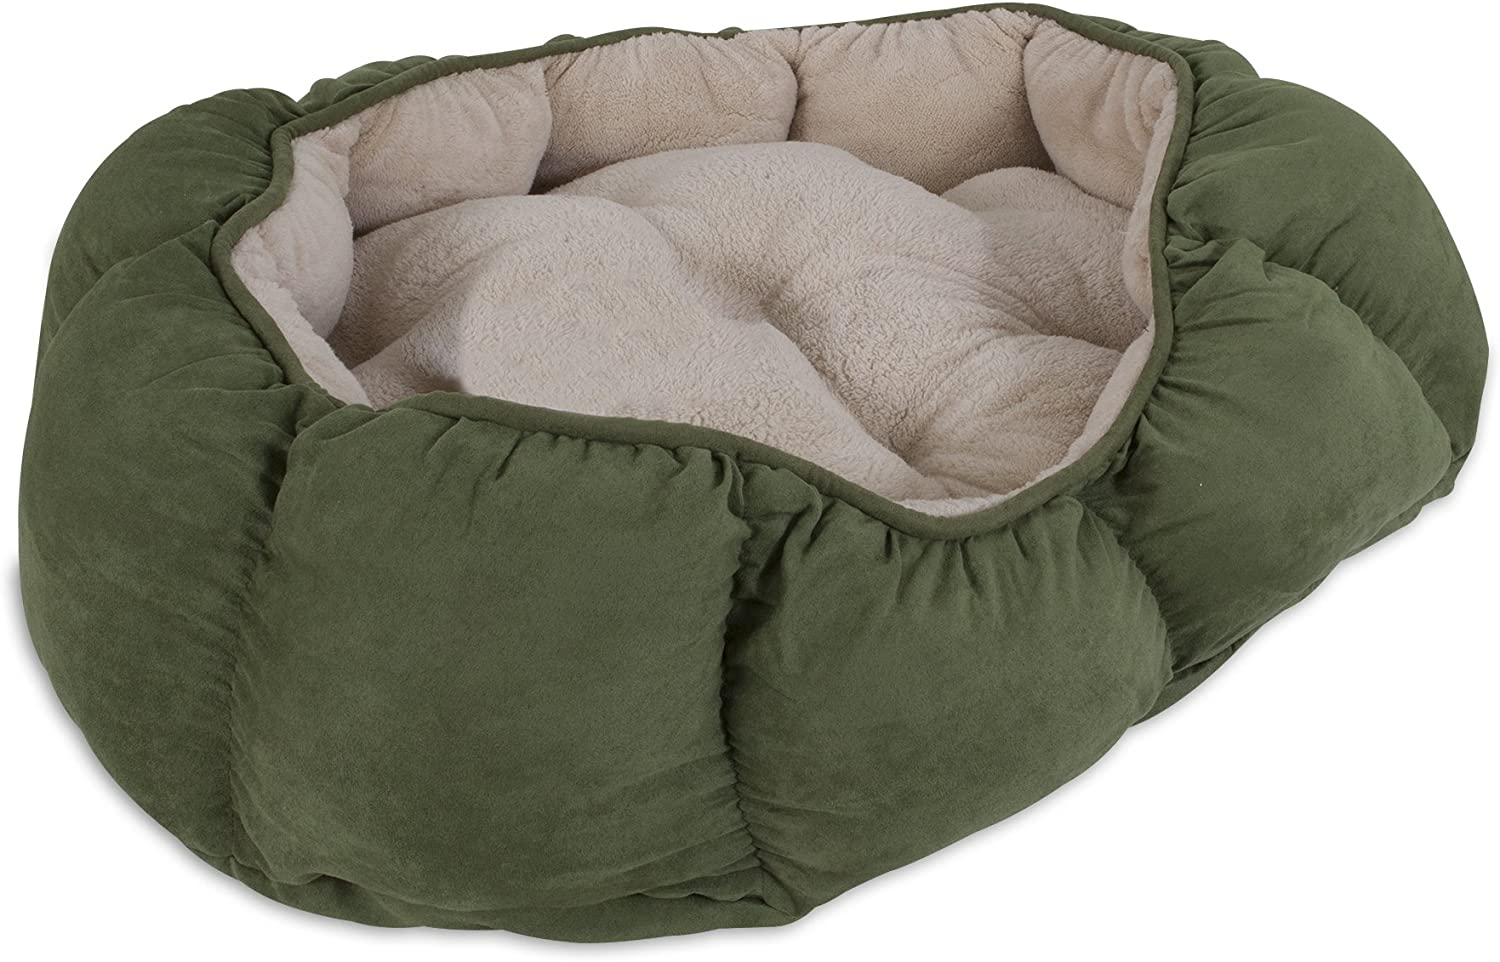 Aspen Pet Overstuffed Oval Bed, 34 x 27, Assorted Navy bluee Burgundy Dark Brown Green